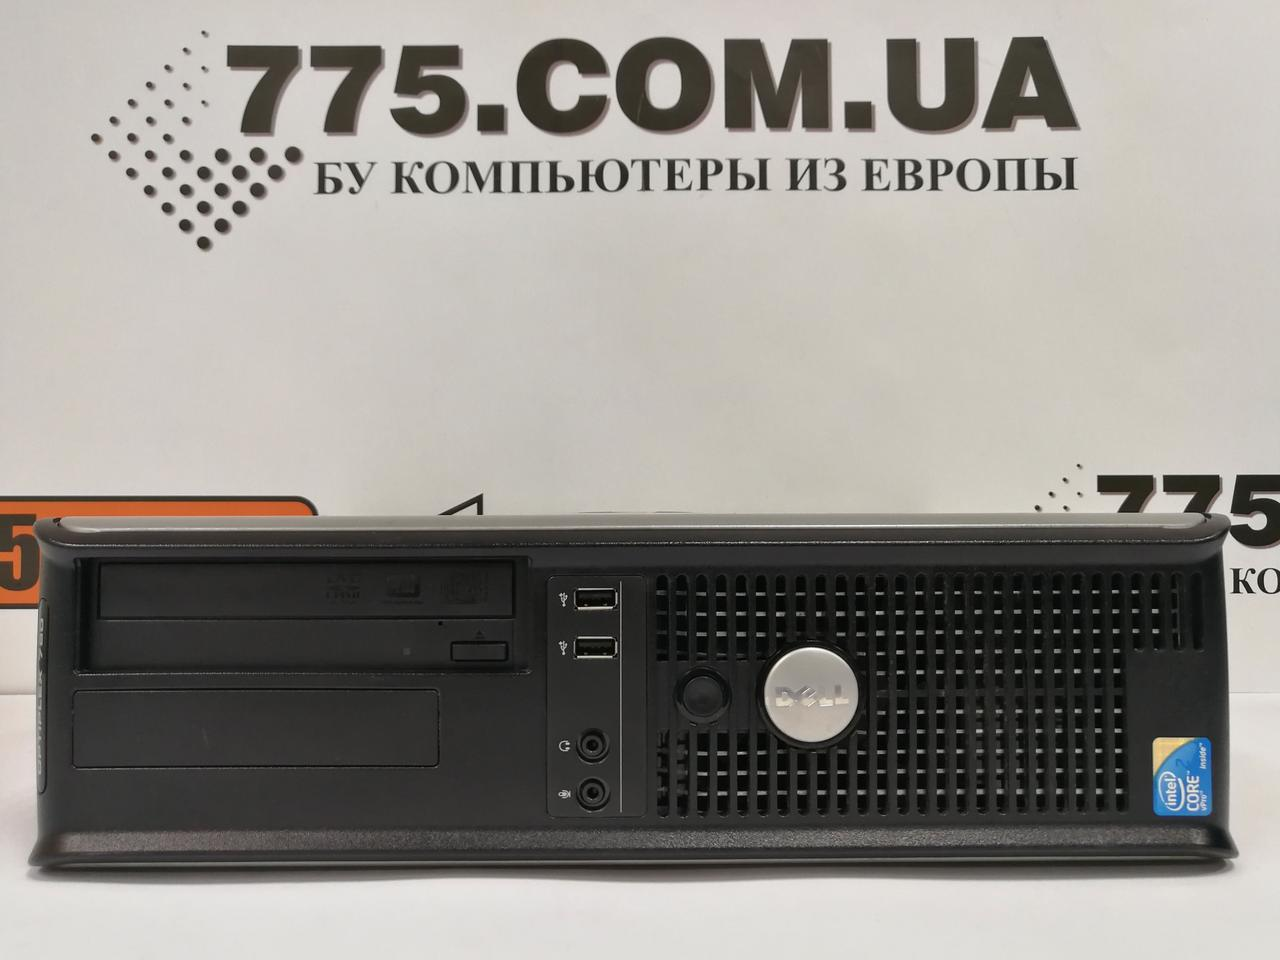 Компьютер Dell OptiPlex 780 (Desktop), Intel Core2Quad Q6600 2.4GHz, RAM 4ГБ (DDR3), HDD 160ГБ